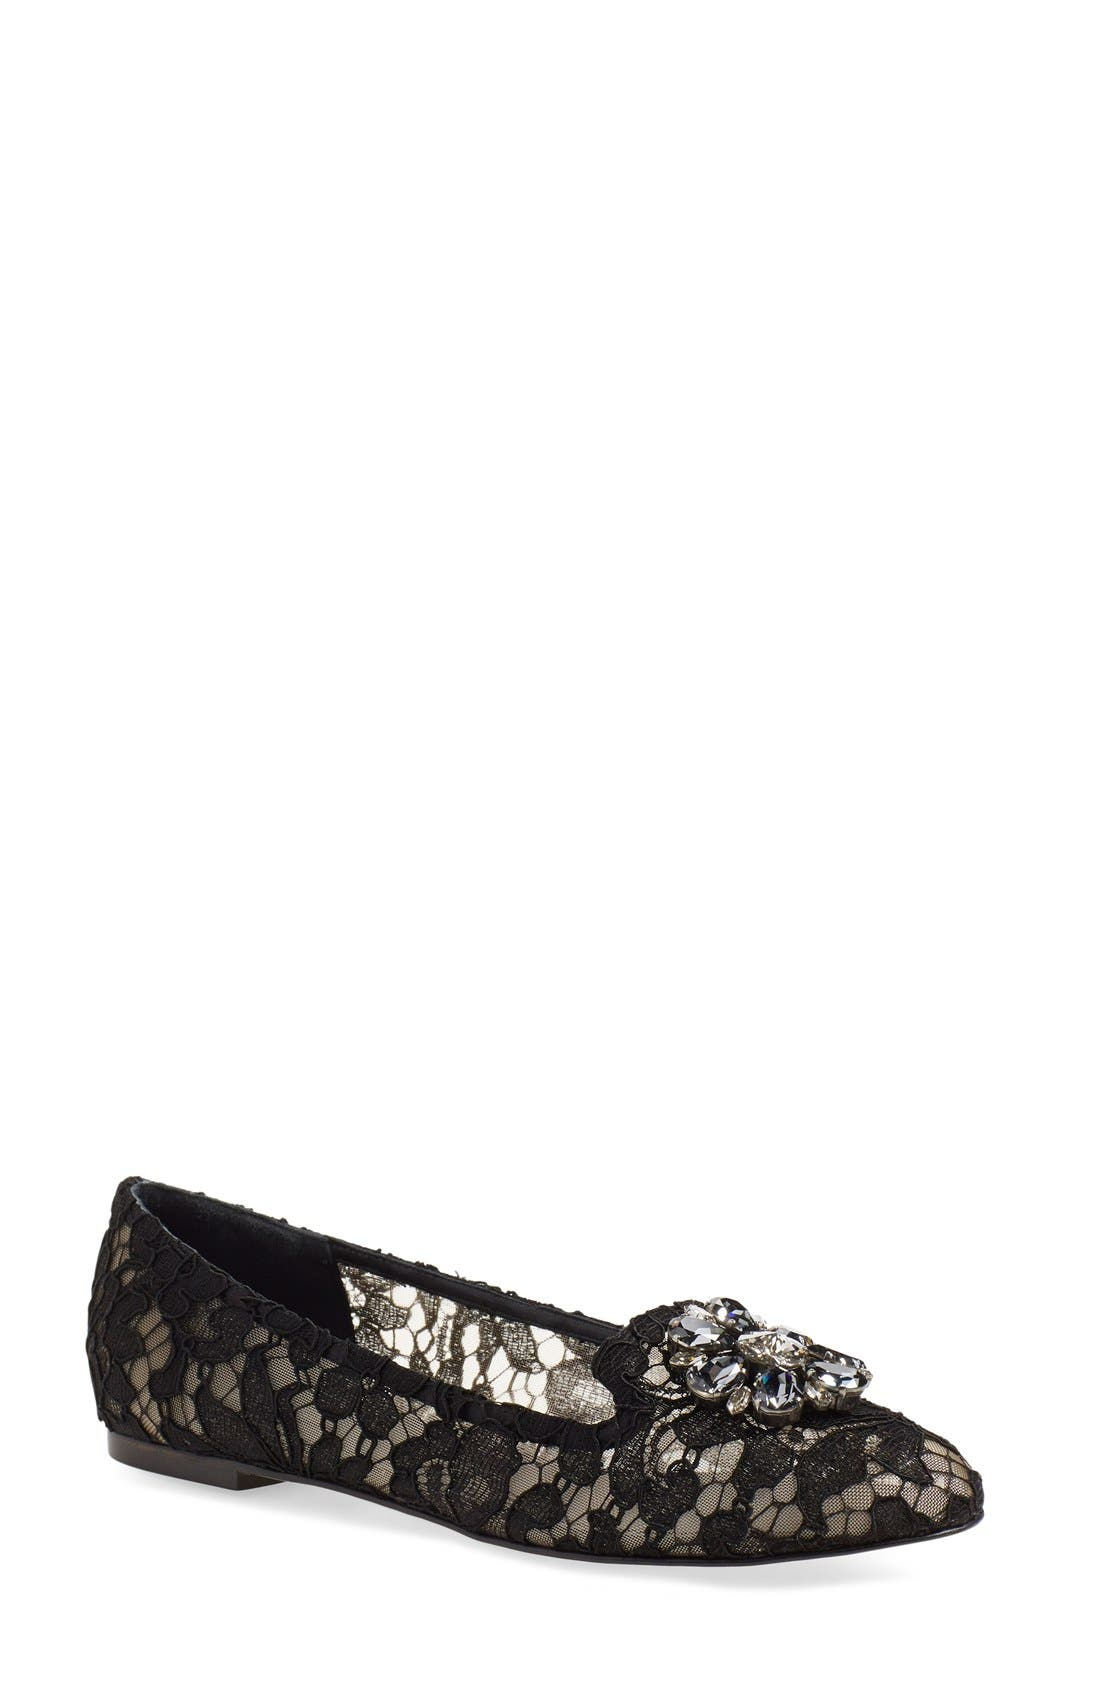 DOLCE&GABBANA Crystal & Lace Pointy Toe Flat, Main, color, 001